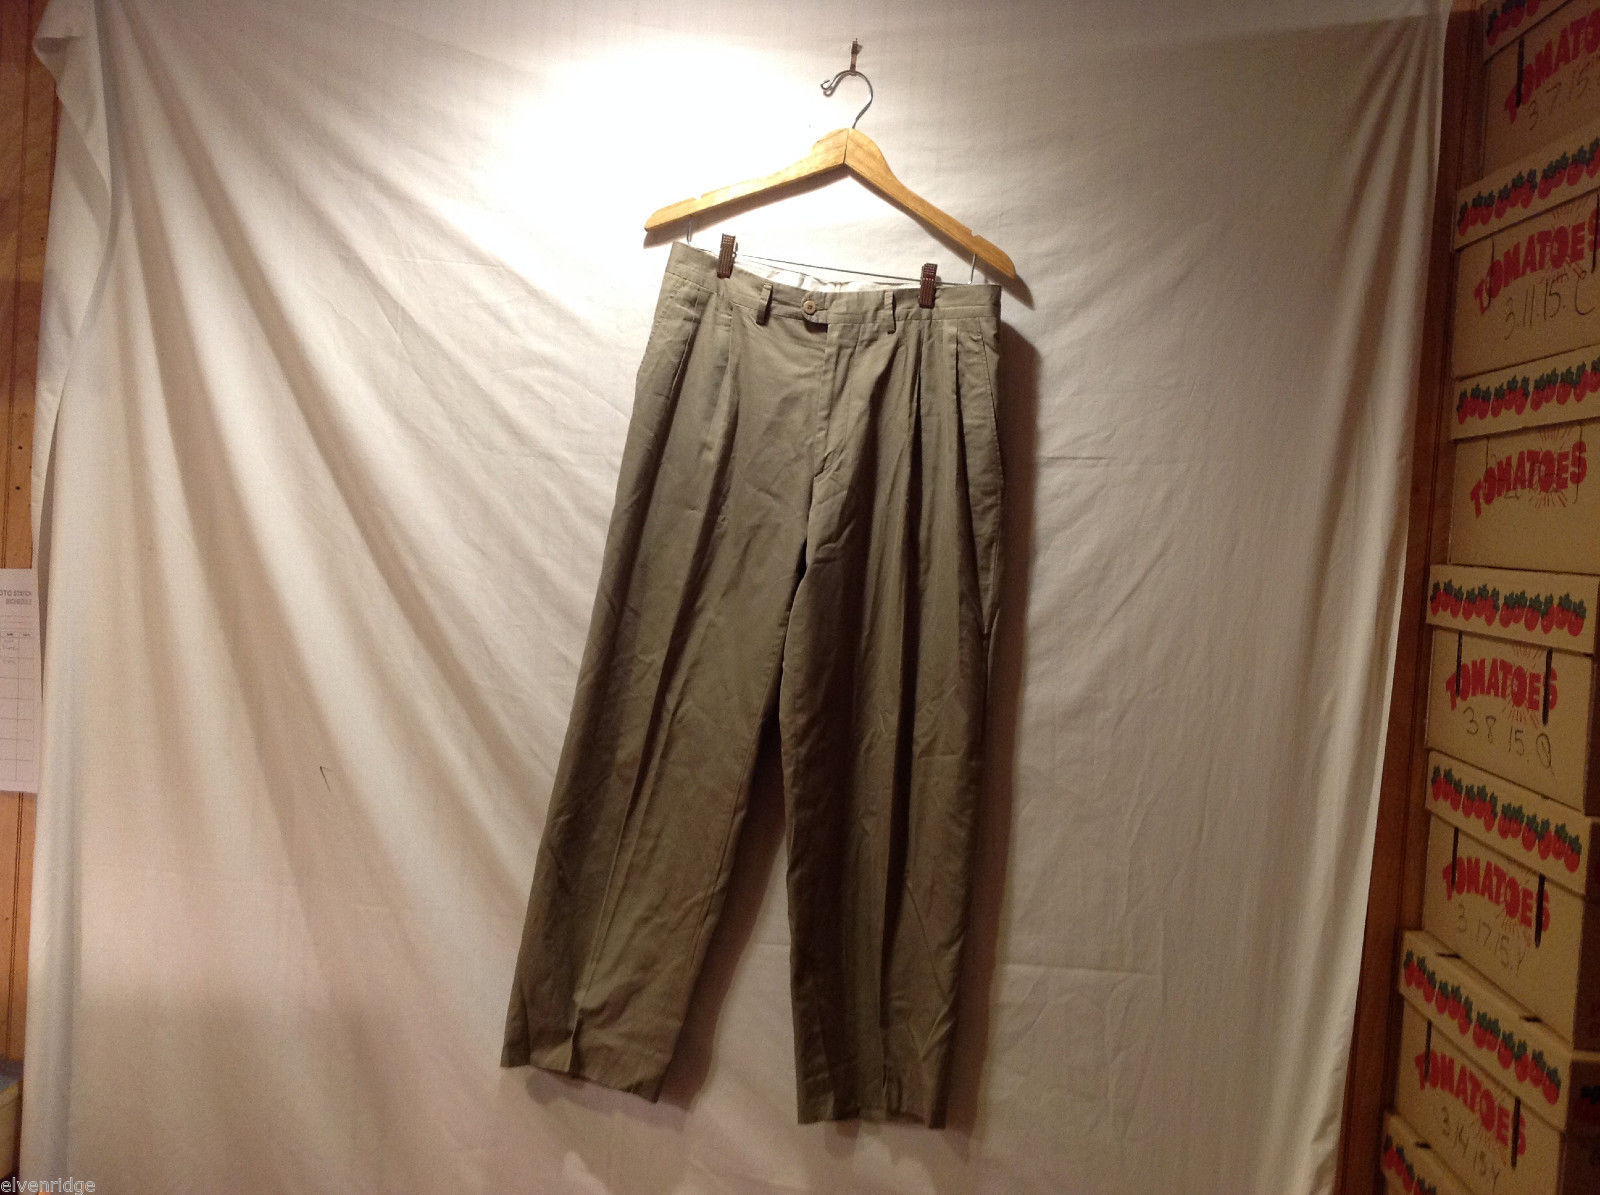 Tinocheda de Florentino Light Olive Green Classic Pants, Size 34, made in Spain